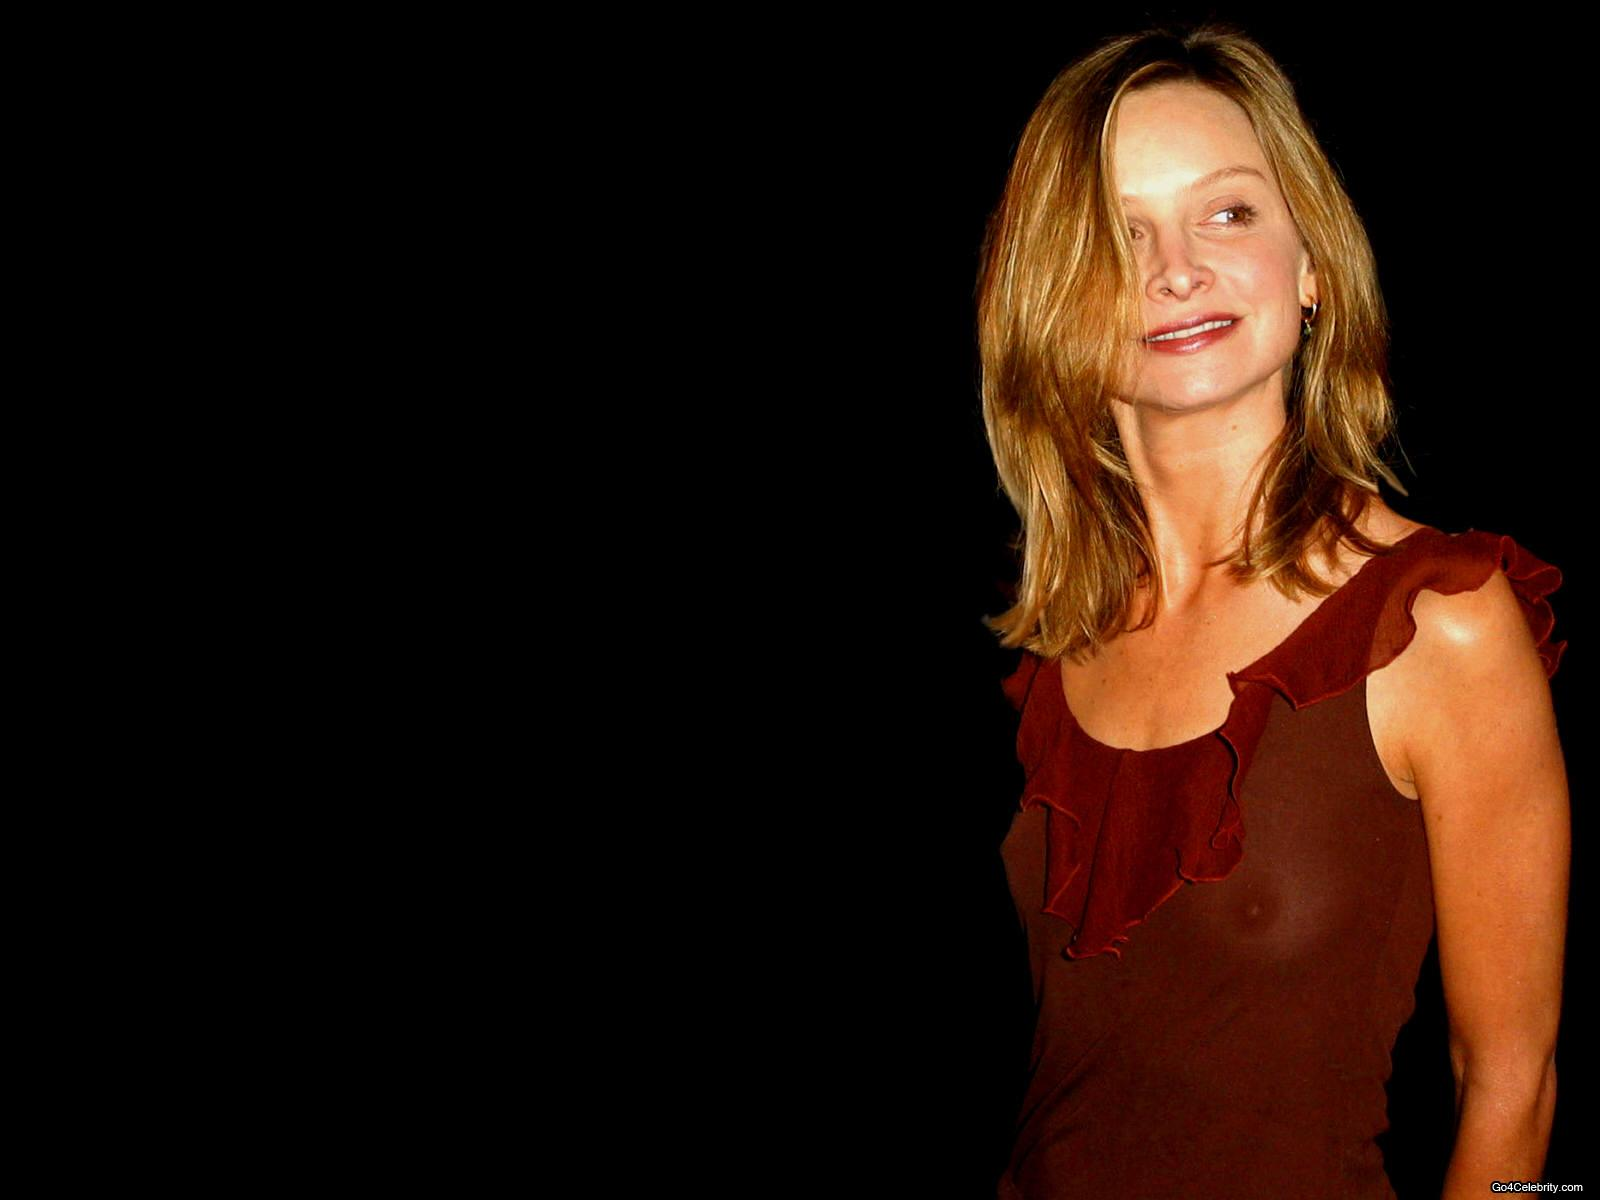 Hot Pictures and Wallpapers: Calista Flockhart